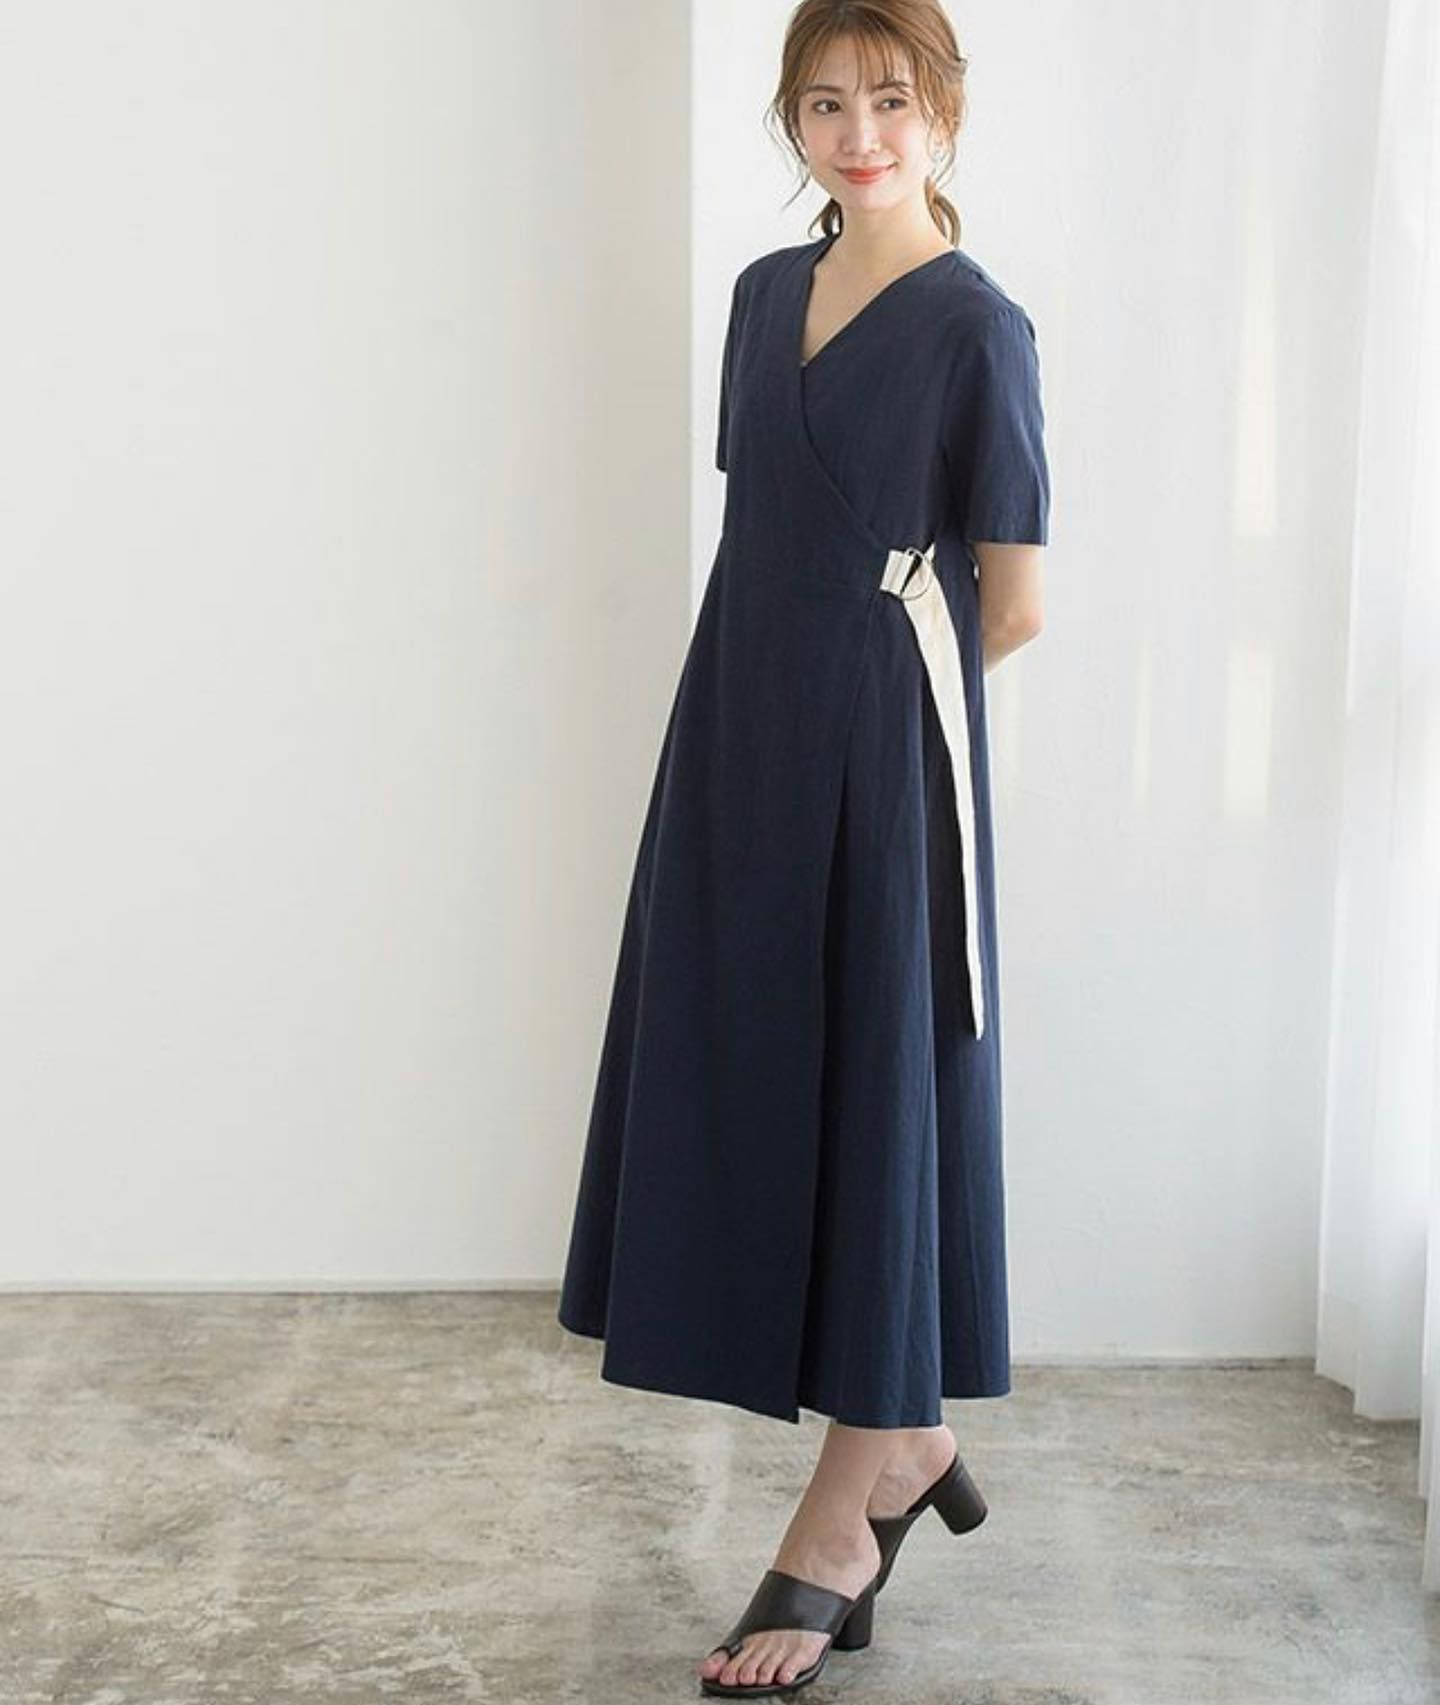 pin by pierrot ピエロ on dress dresses fashion dresses for work